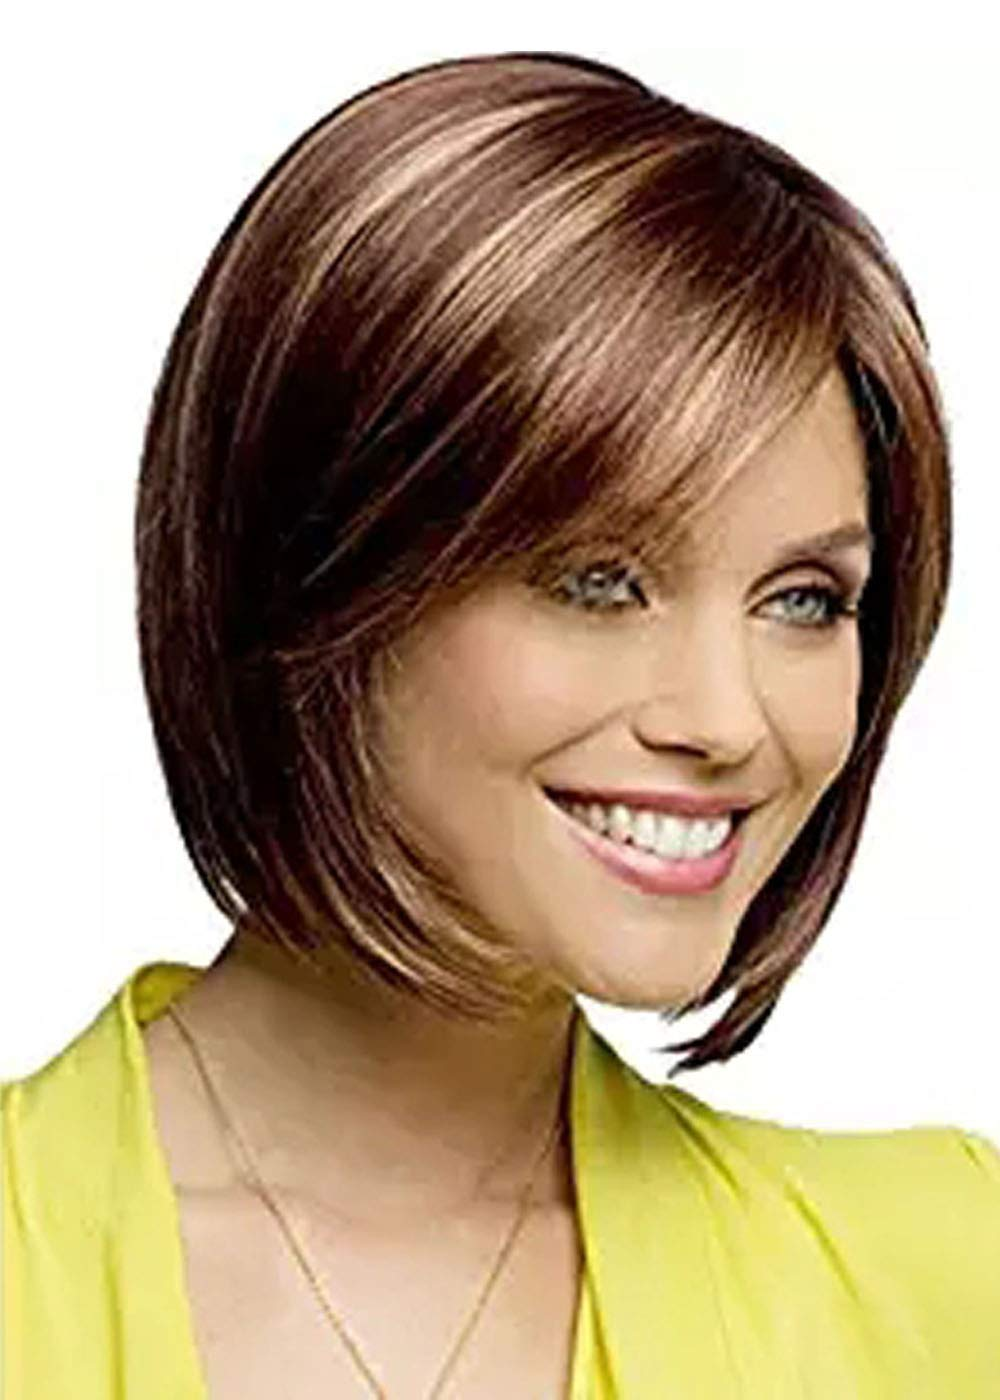 MILISI Brown Bob Wig for Women Short Straight Heat Resistant Synthetic Full Wigs + 1 Wig Cap (brown)